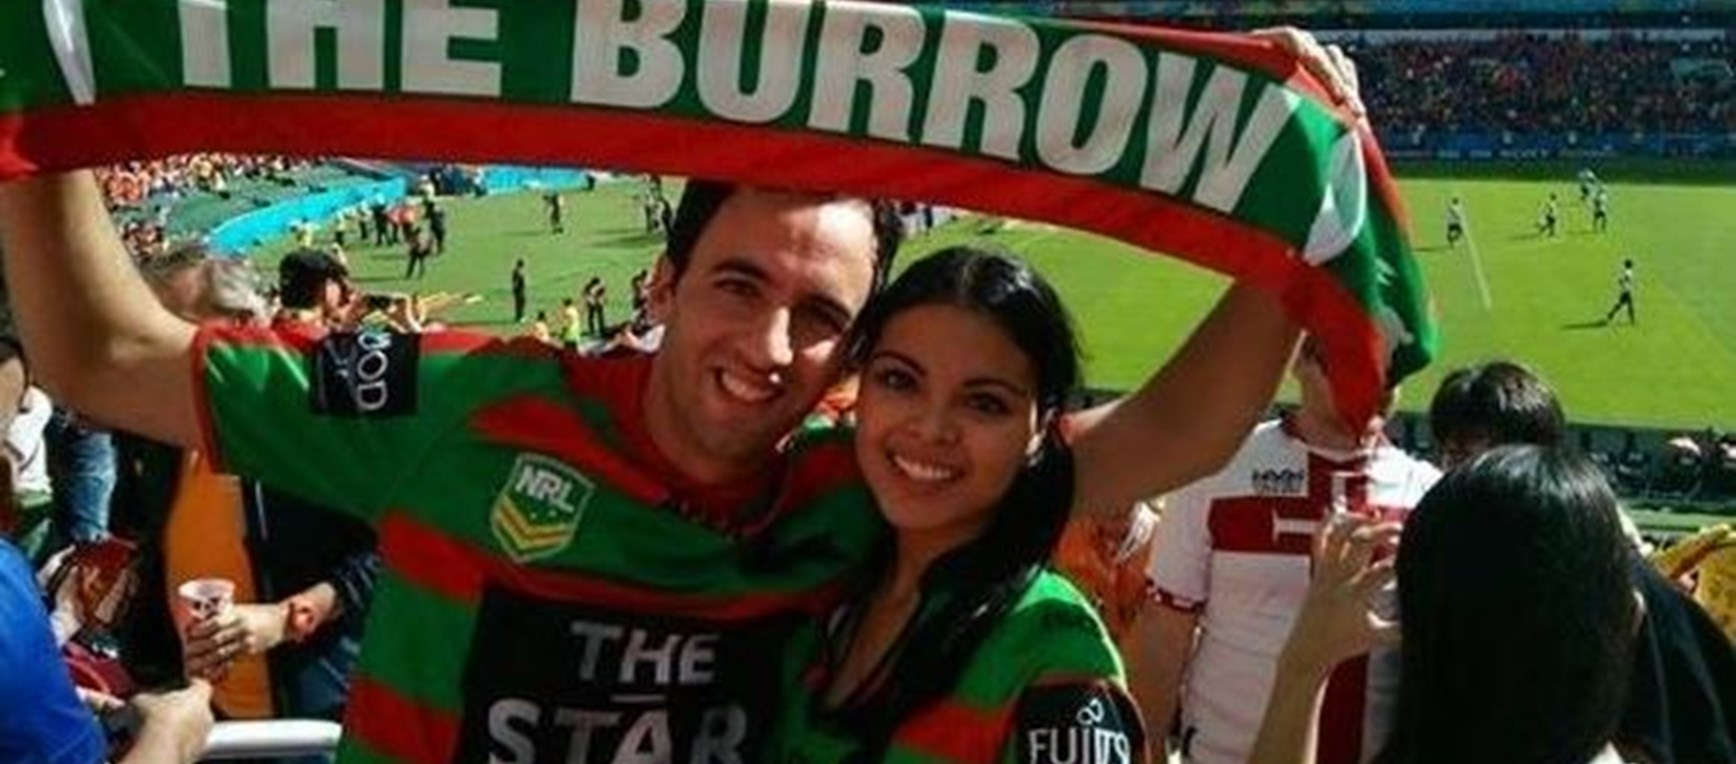 Rabbitohs Around the World